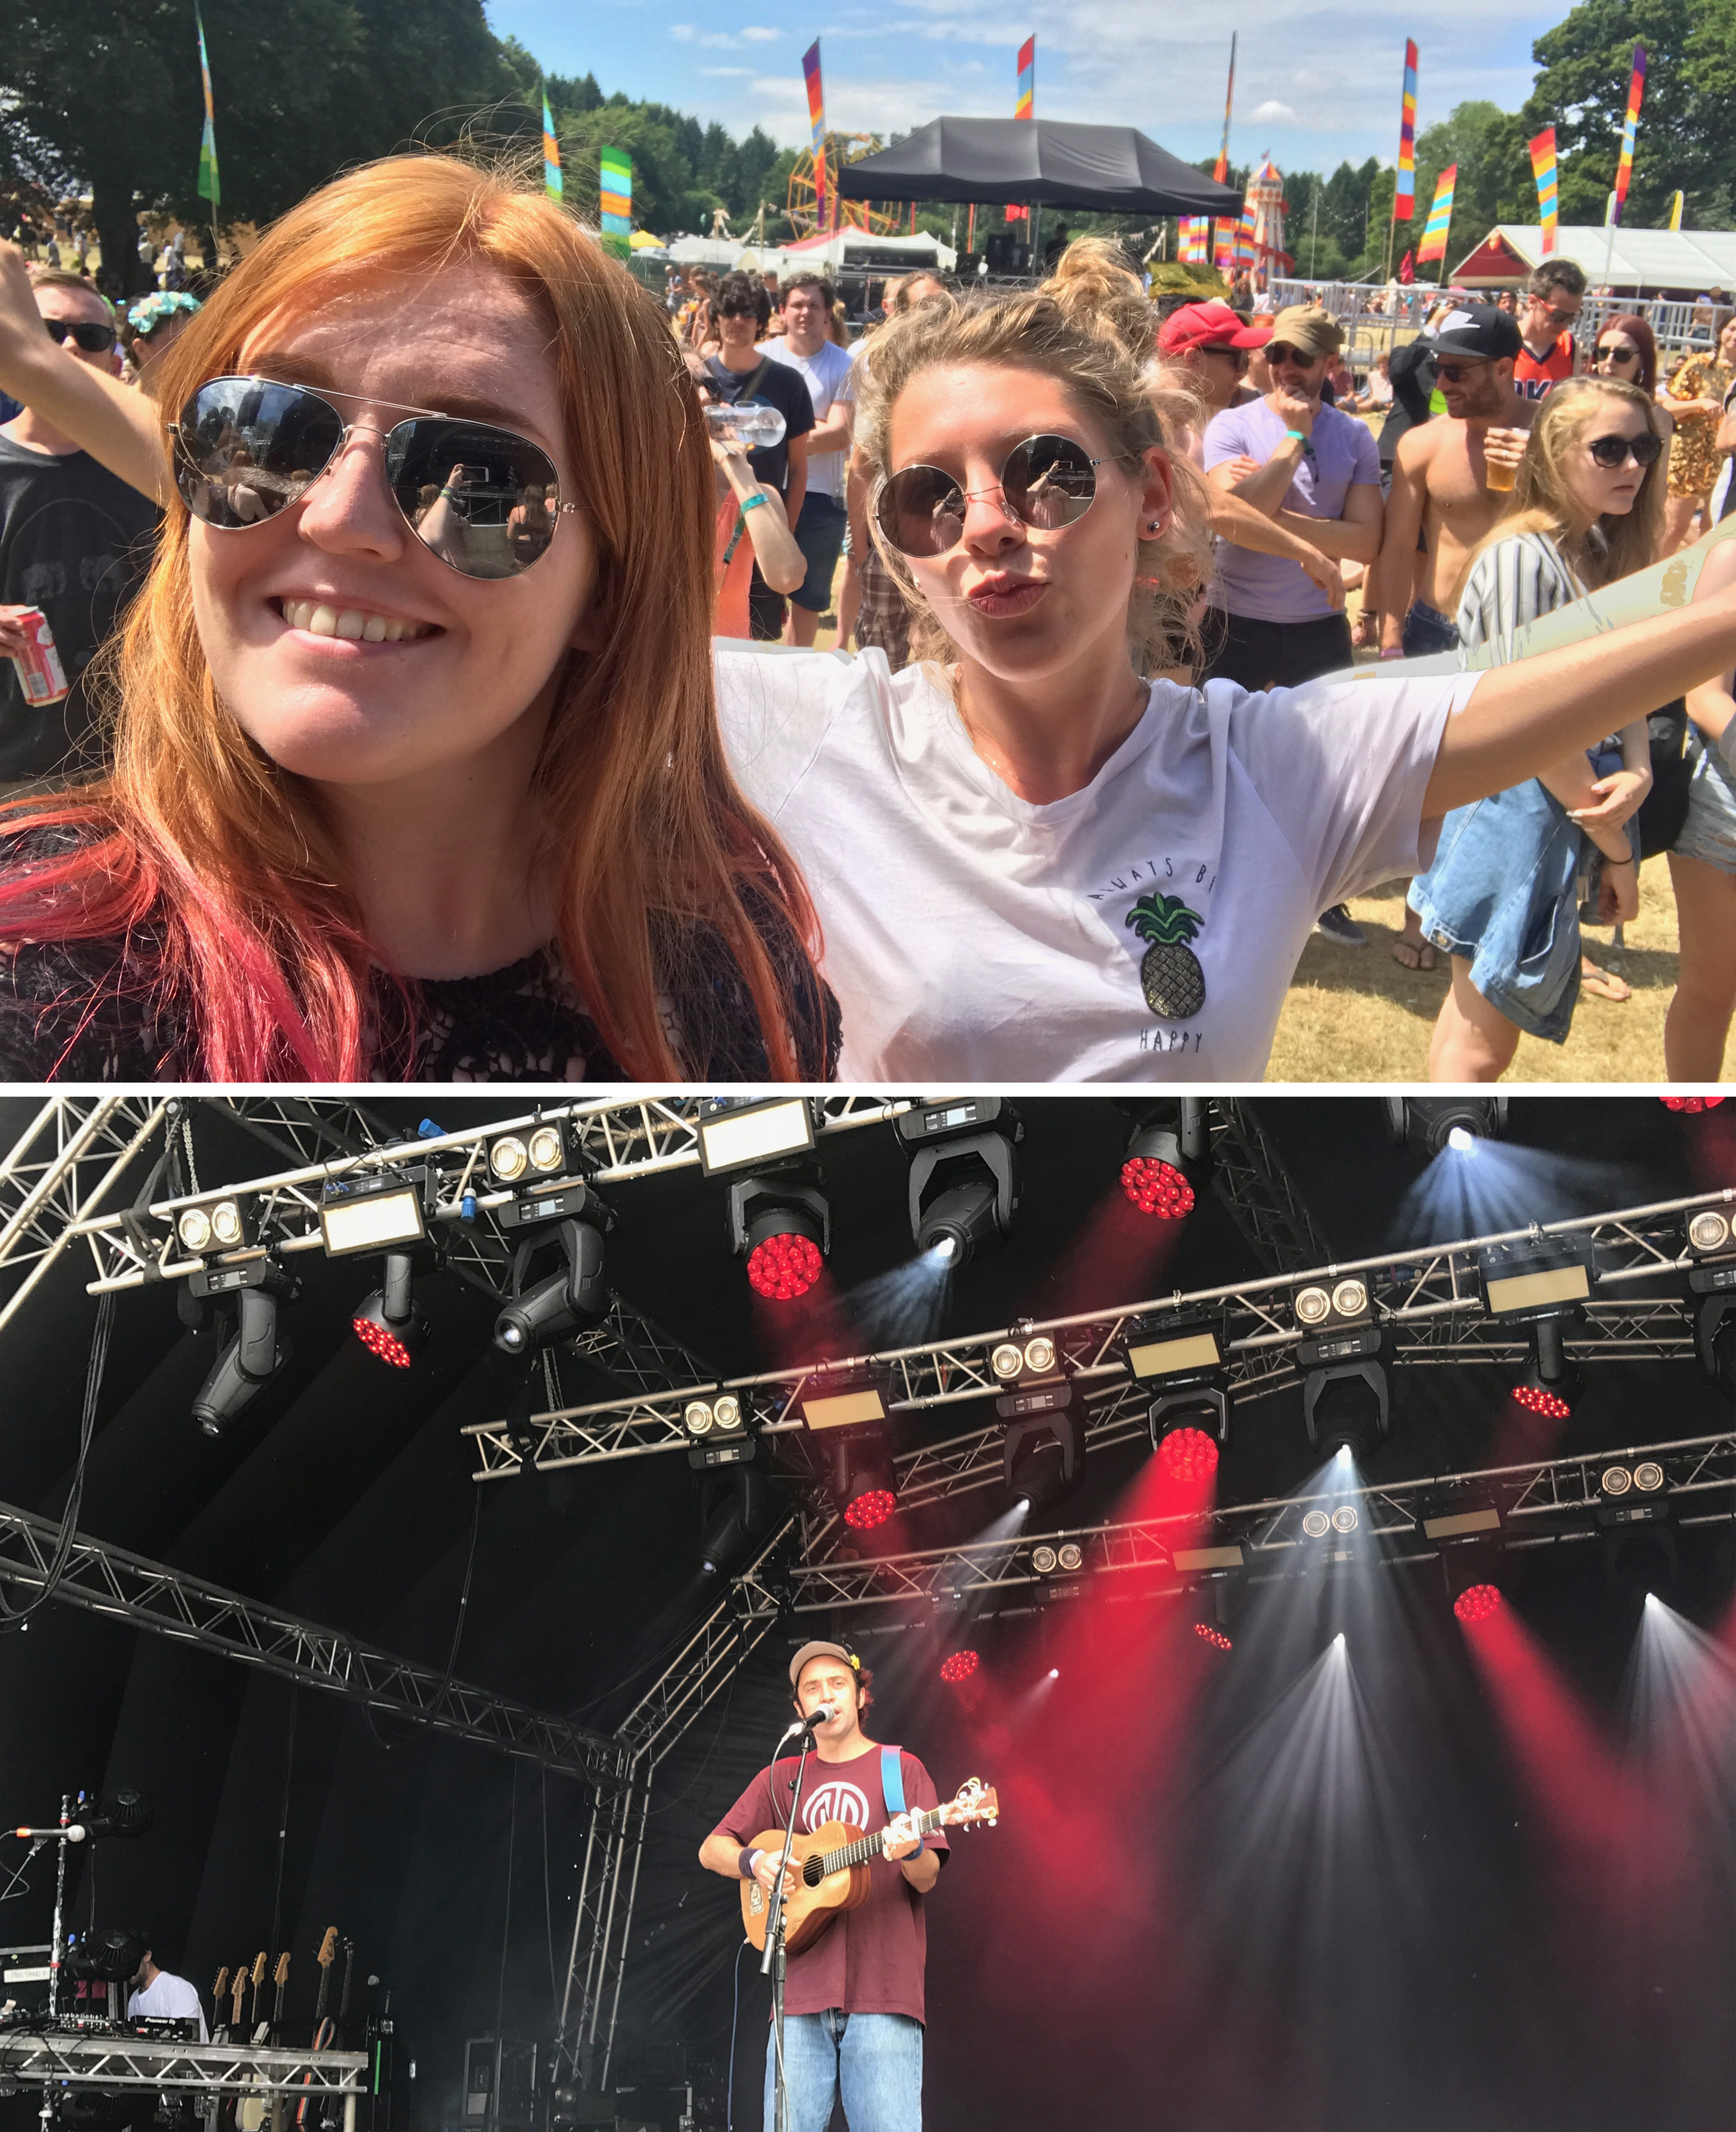 Lara and I waiting for Beans of Toast, and then when he took to the stage playing acoustic guitar